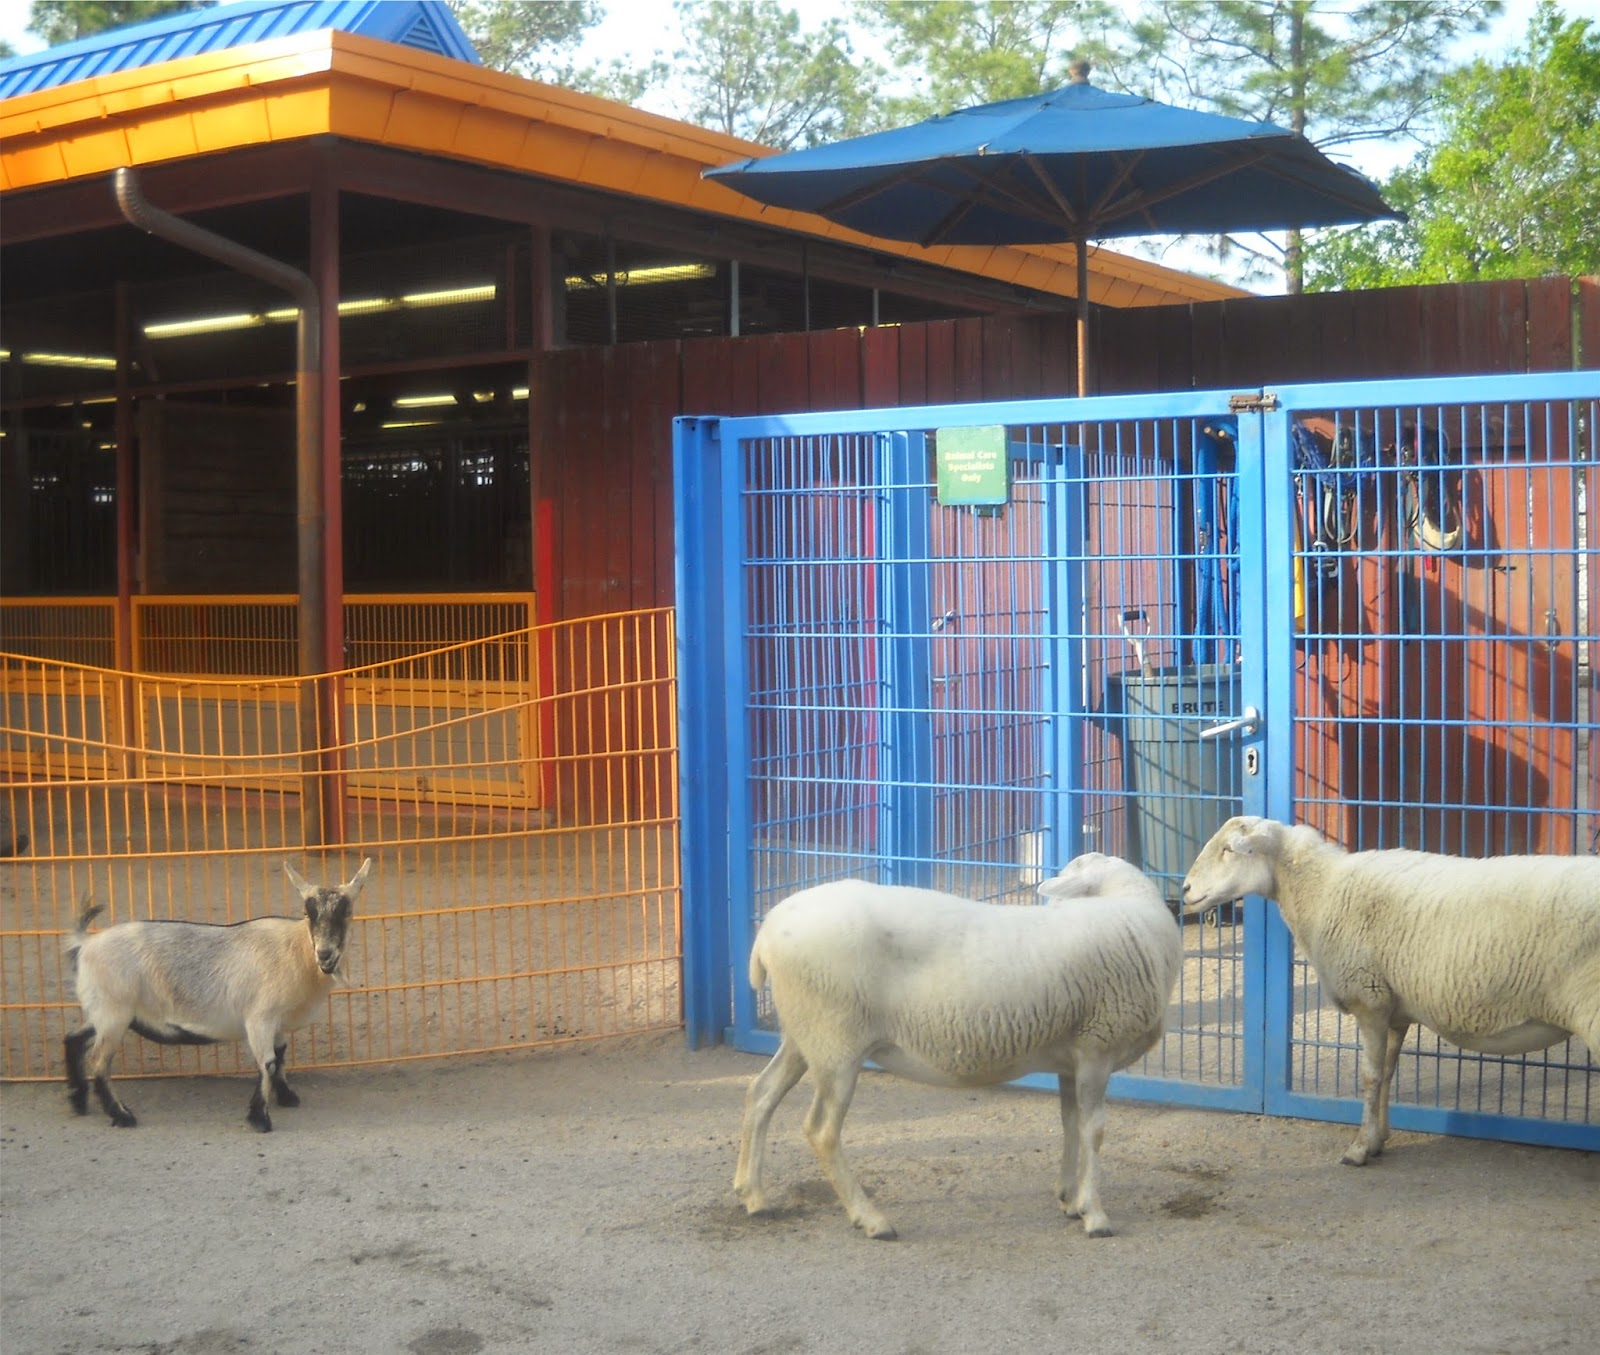 Brush goats in the pen at Disney World's Animal Kingdom in Florida